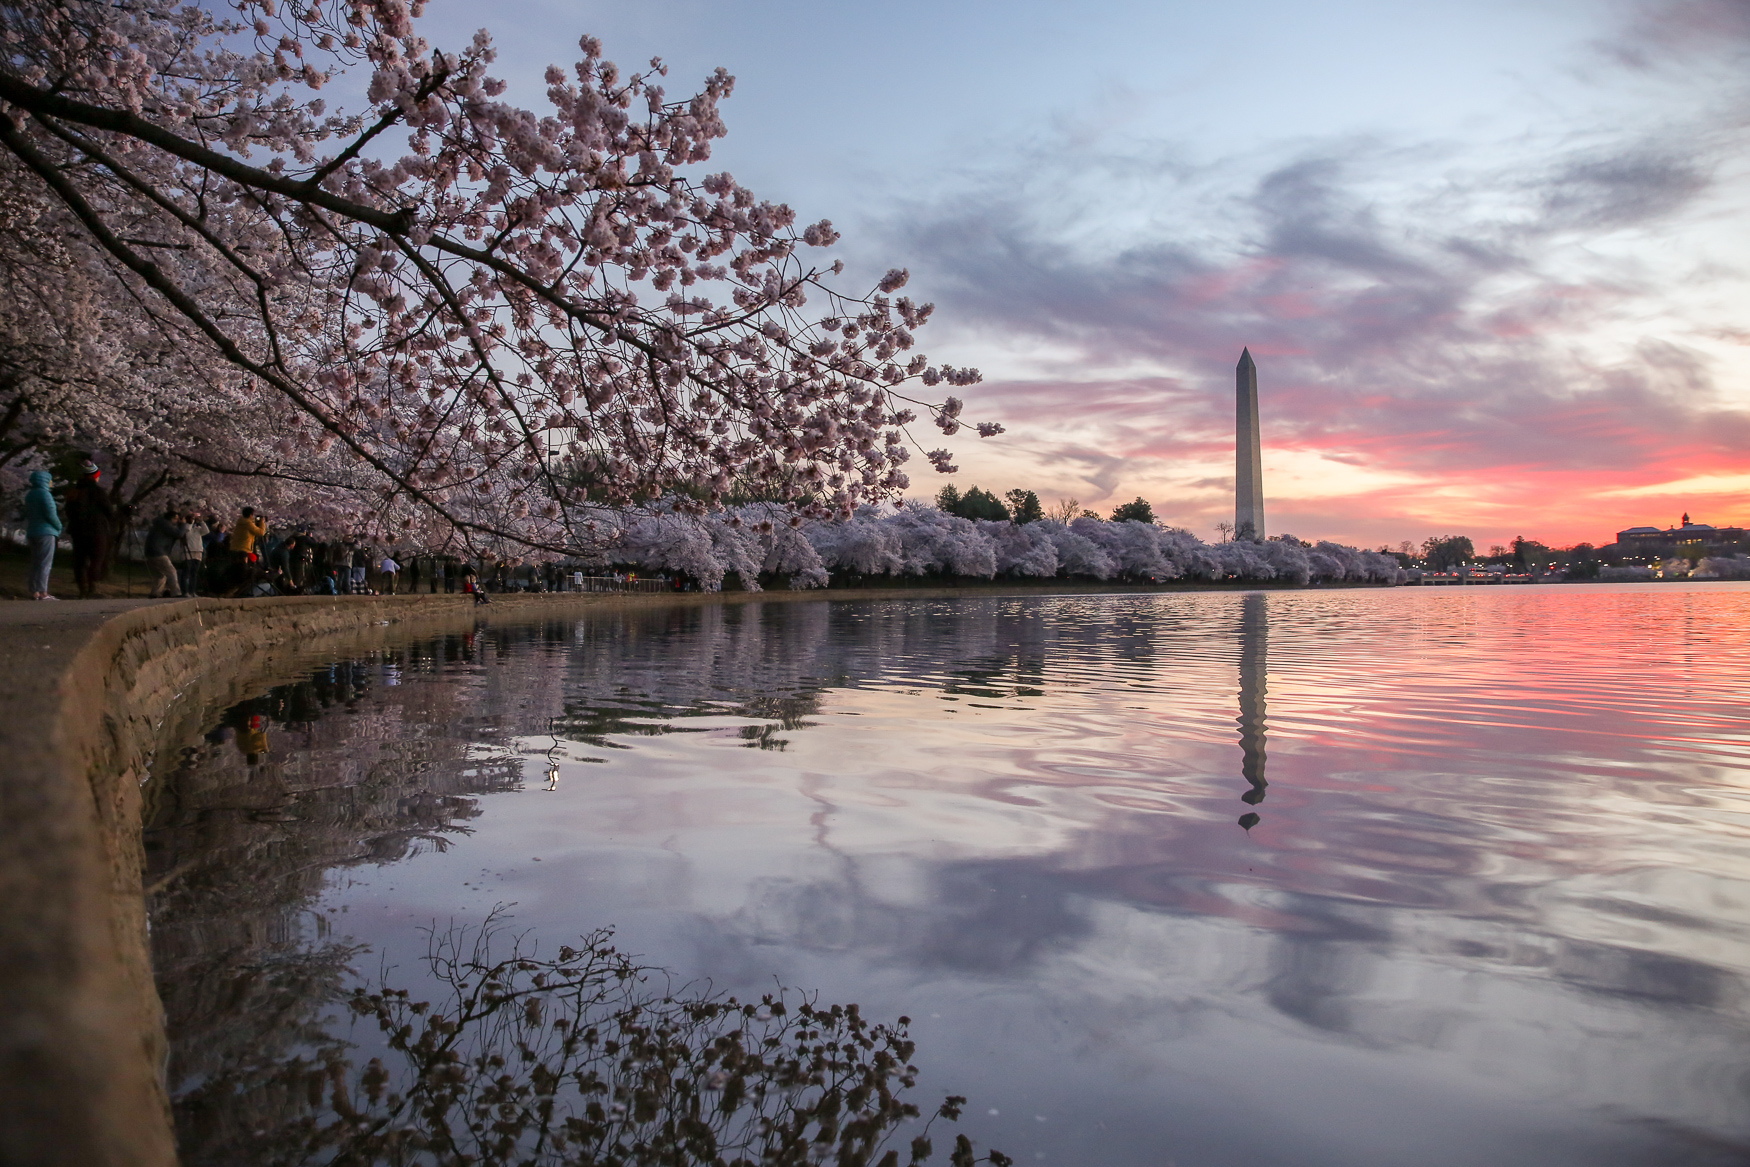 Peak bloom is here, meaning that the majority of the trees around the Tidal Basin are covered in pink or white cherry blossoms. According to the National Parks Service, the blooms are expected to last between seven and ten days. The best time of day to see the stunning blooms is around sunrise, which is currently near 7 a.m. It's an early wake up, but the crowds are fairly thin and you'll be rewarded with a gorgeous way to start your day. (Amanda Andrade-Rhoades/DC Refined)